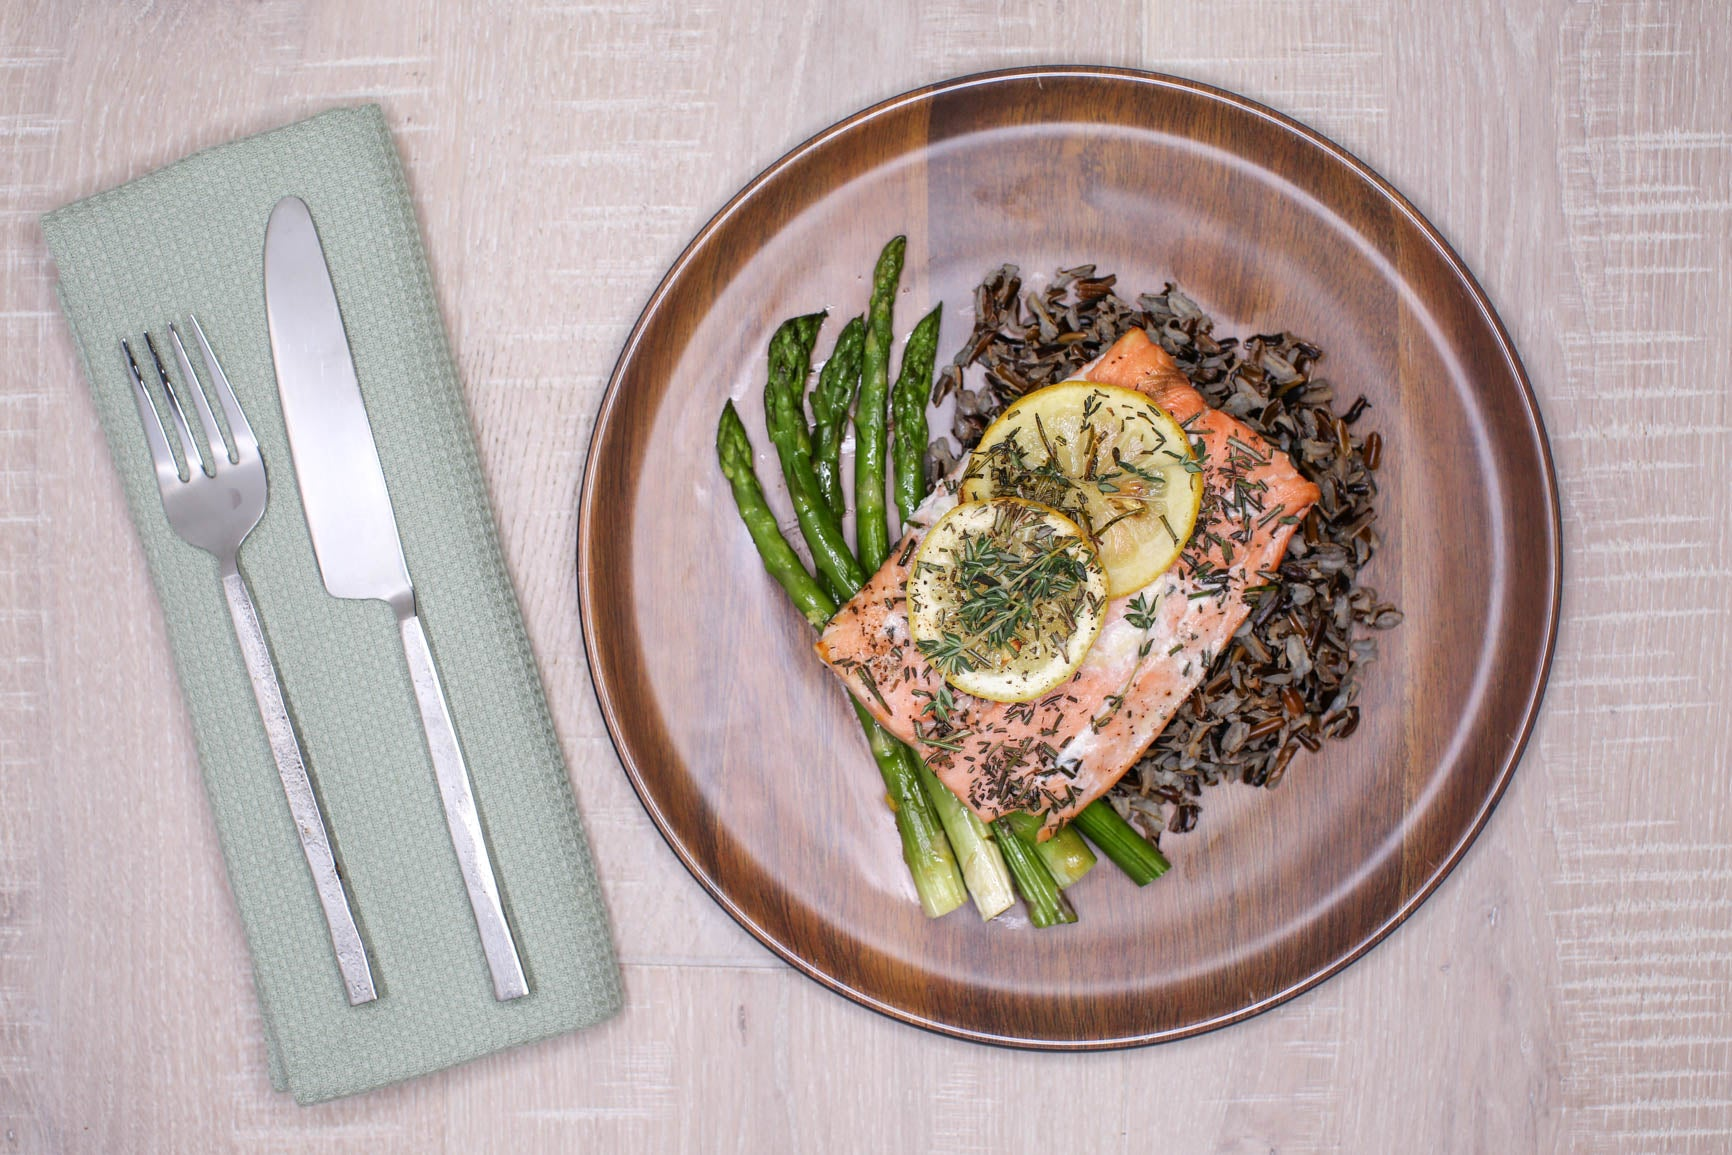 Lemon Herb Salmon w/ Wild Rice